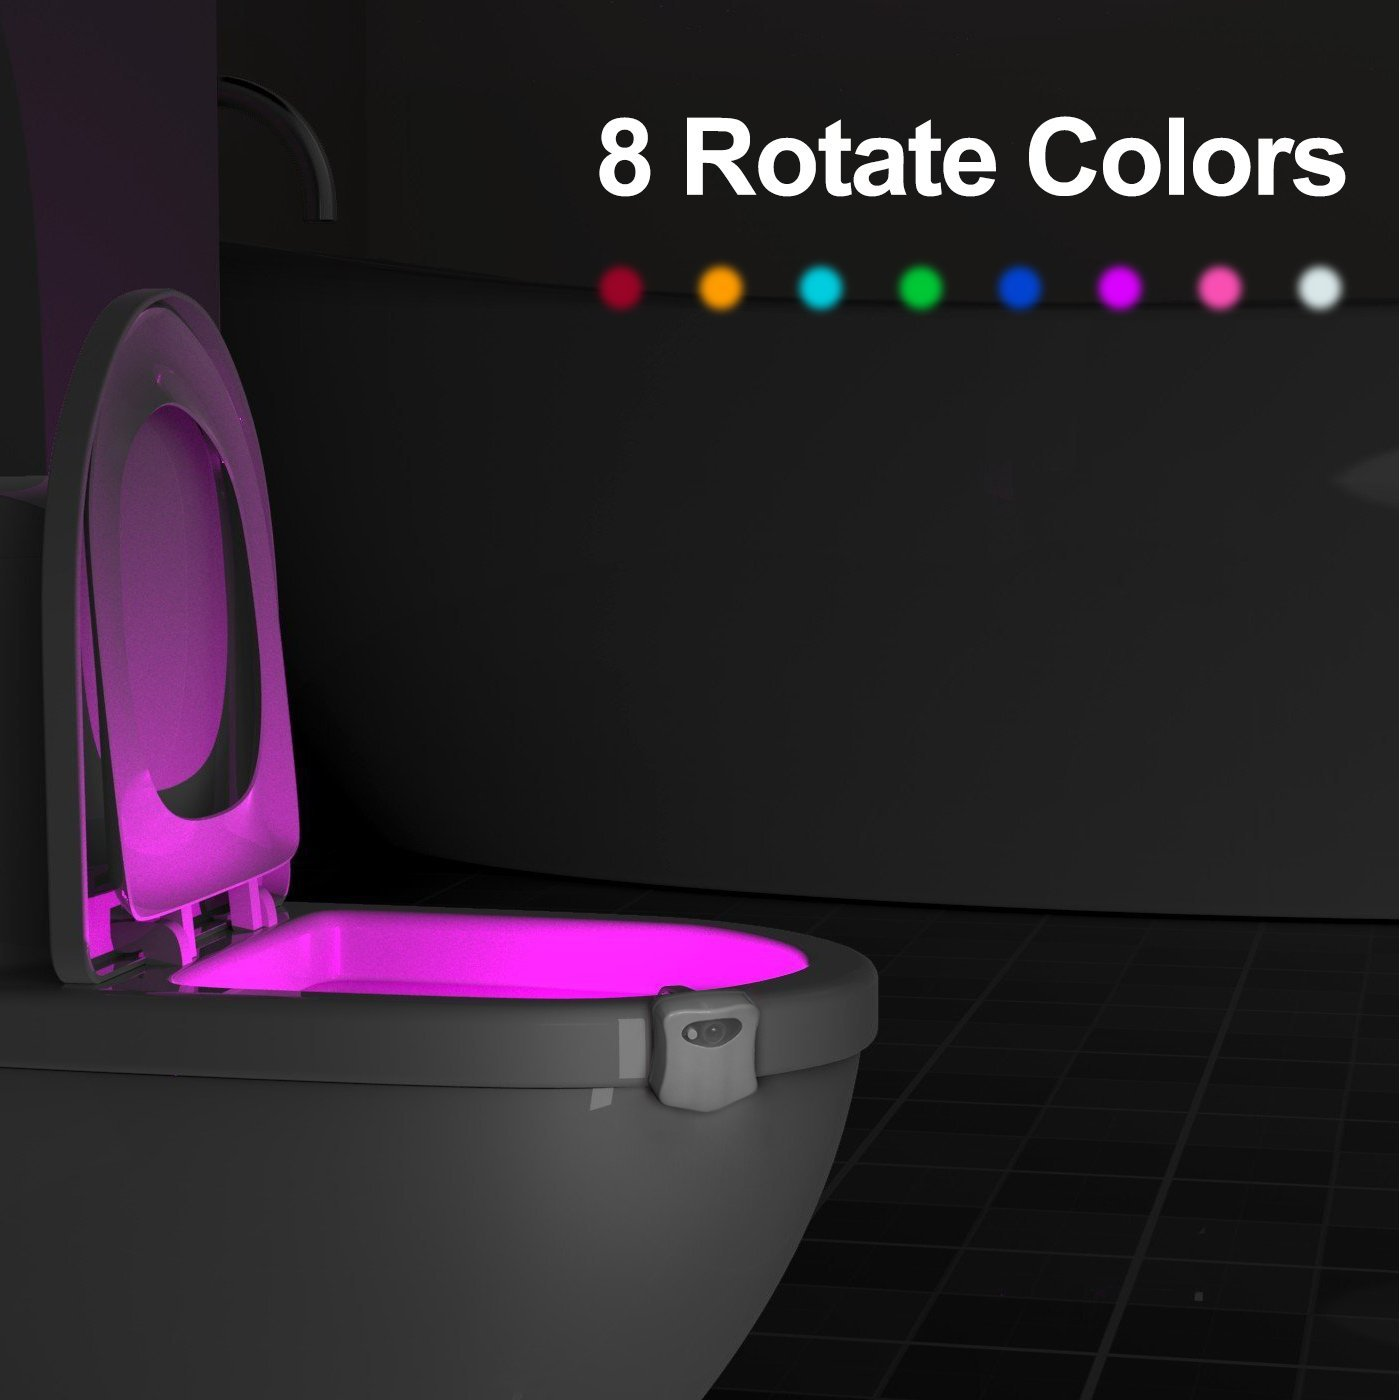 Lampe Led Wc Lampe Pour Wc Oh My God